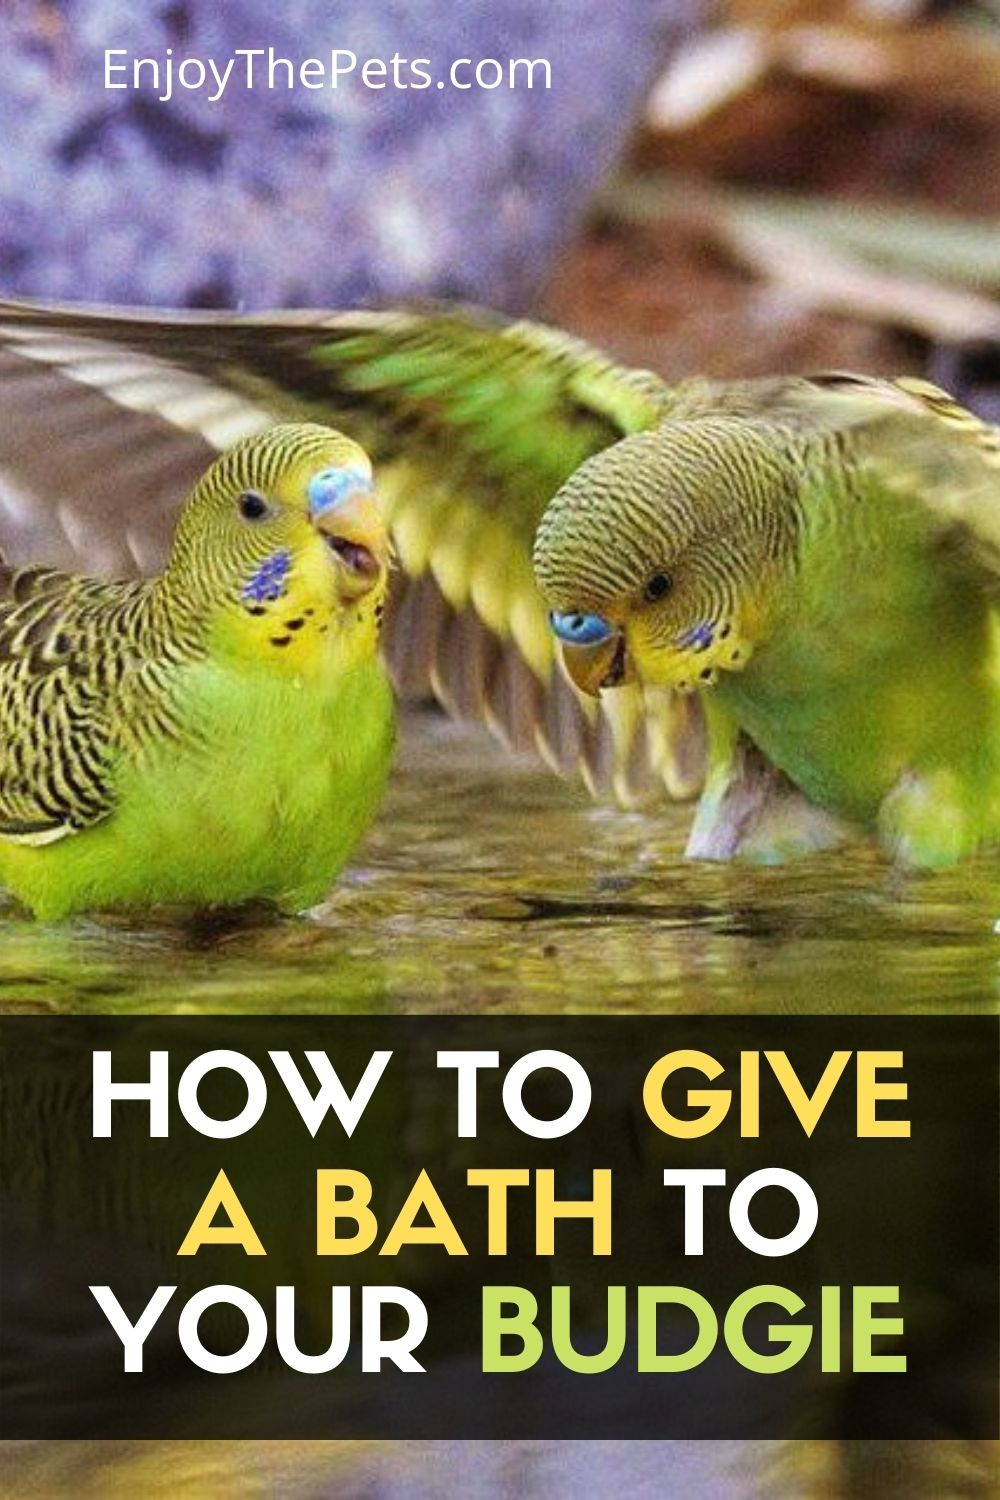 How to Give a Bath to Your Budgie